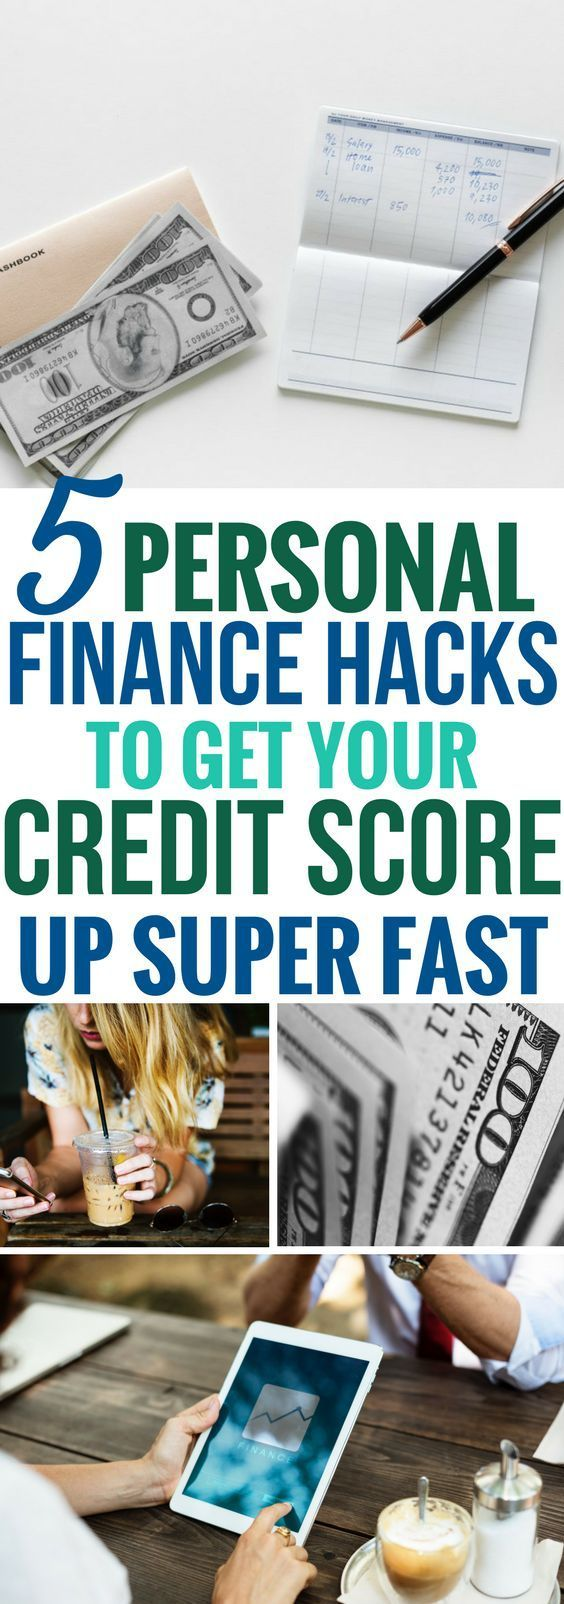 5 Personal Finance Hacks To Get Your Credit Score Up Fast